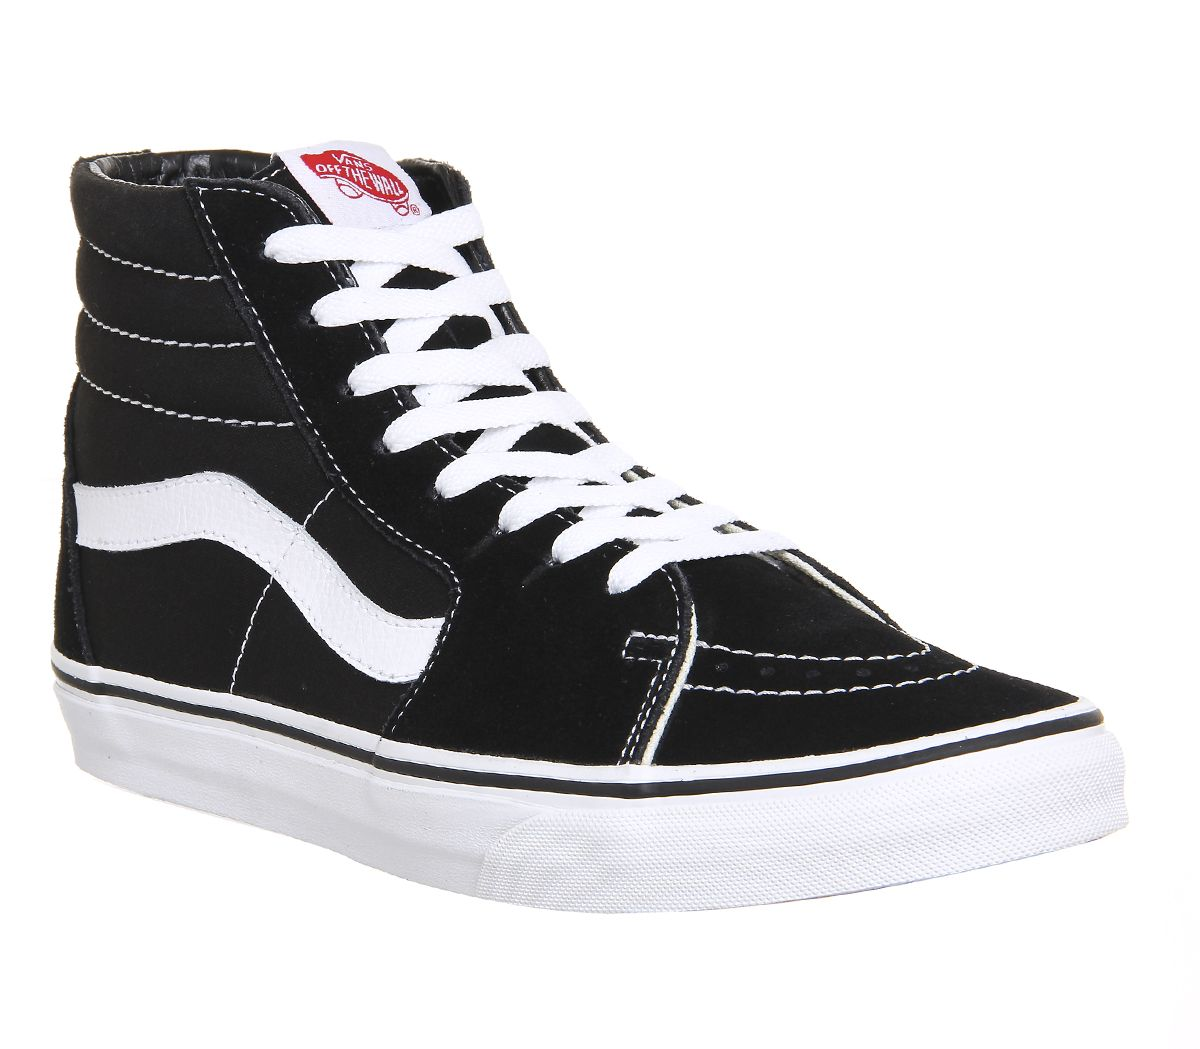 ca2457e394 Vans Sk8 Hi Black White Canvas - Office Girl